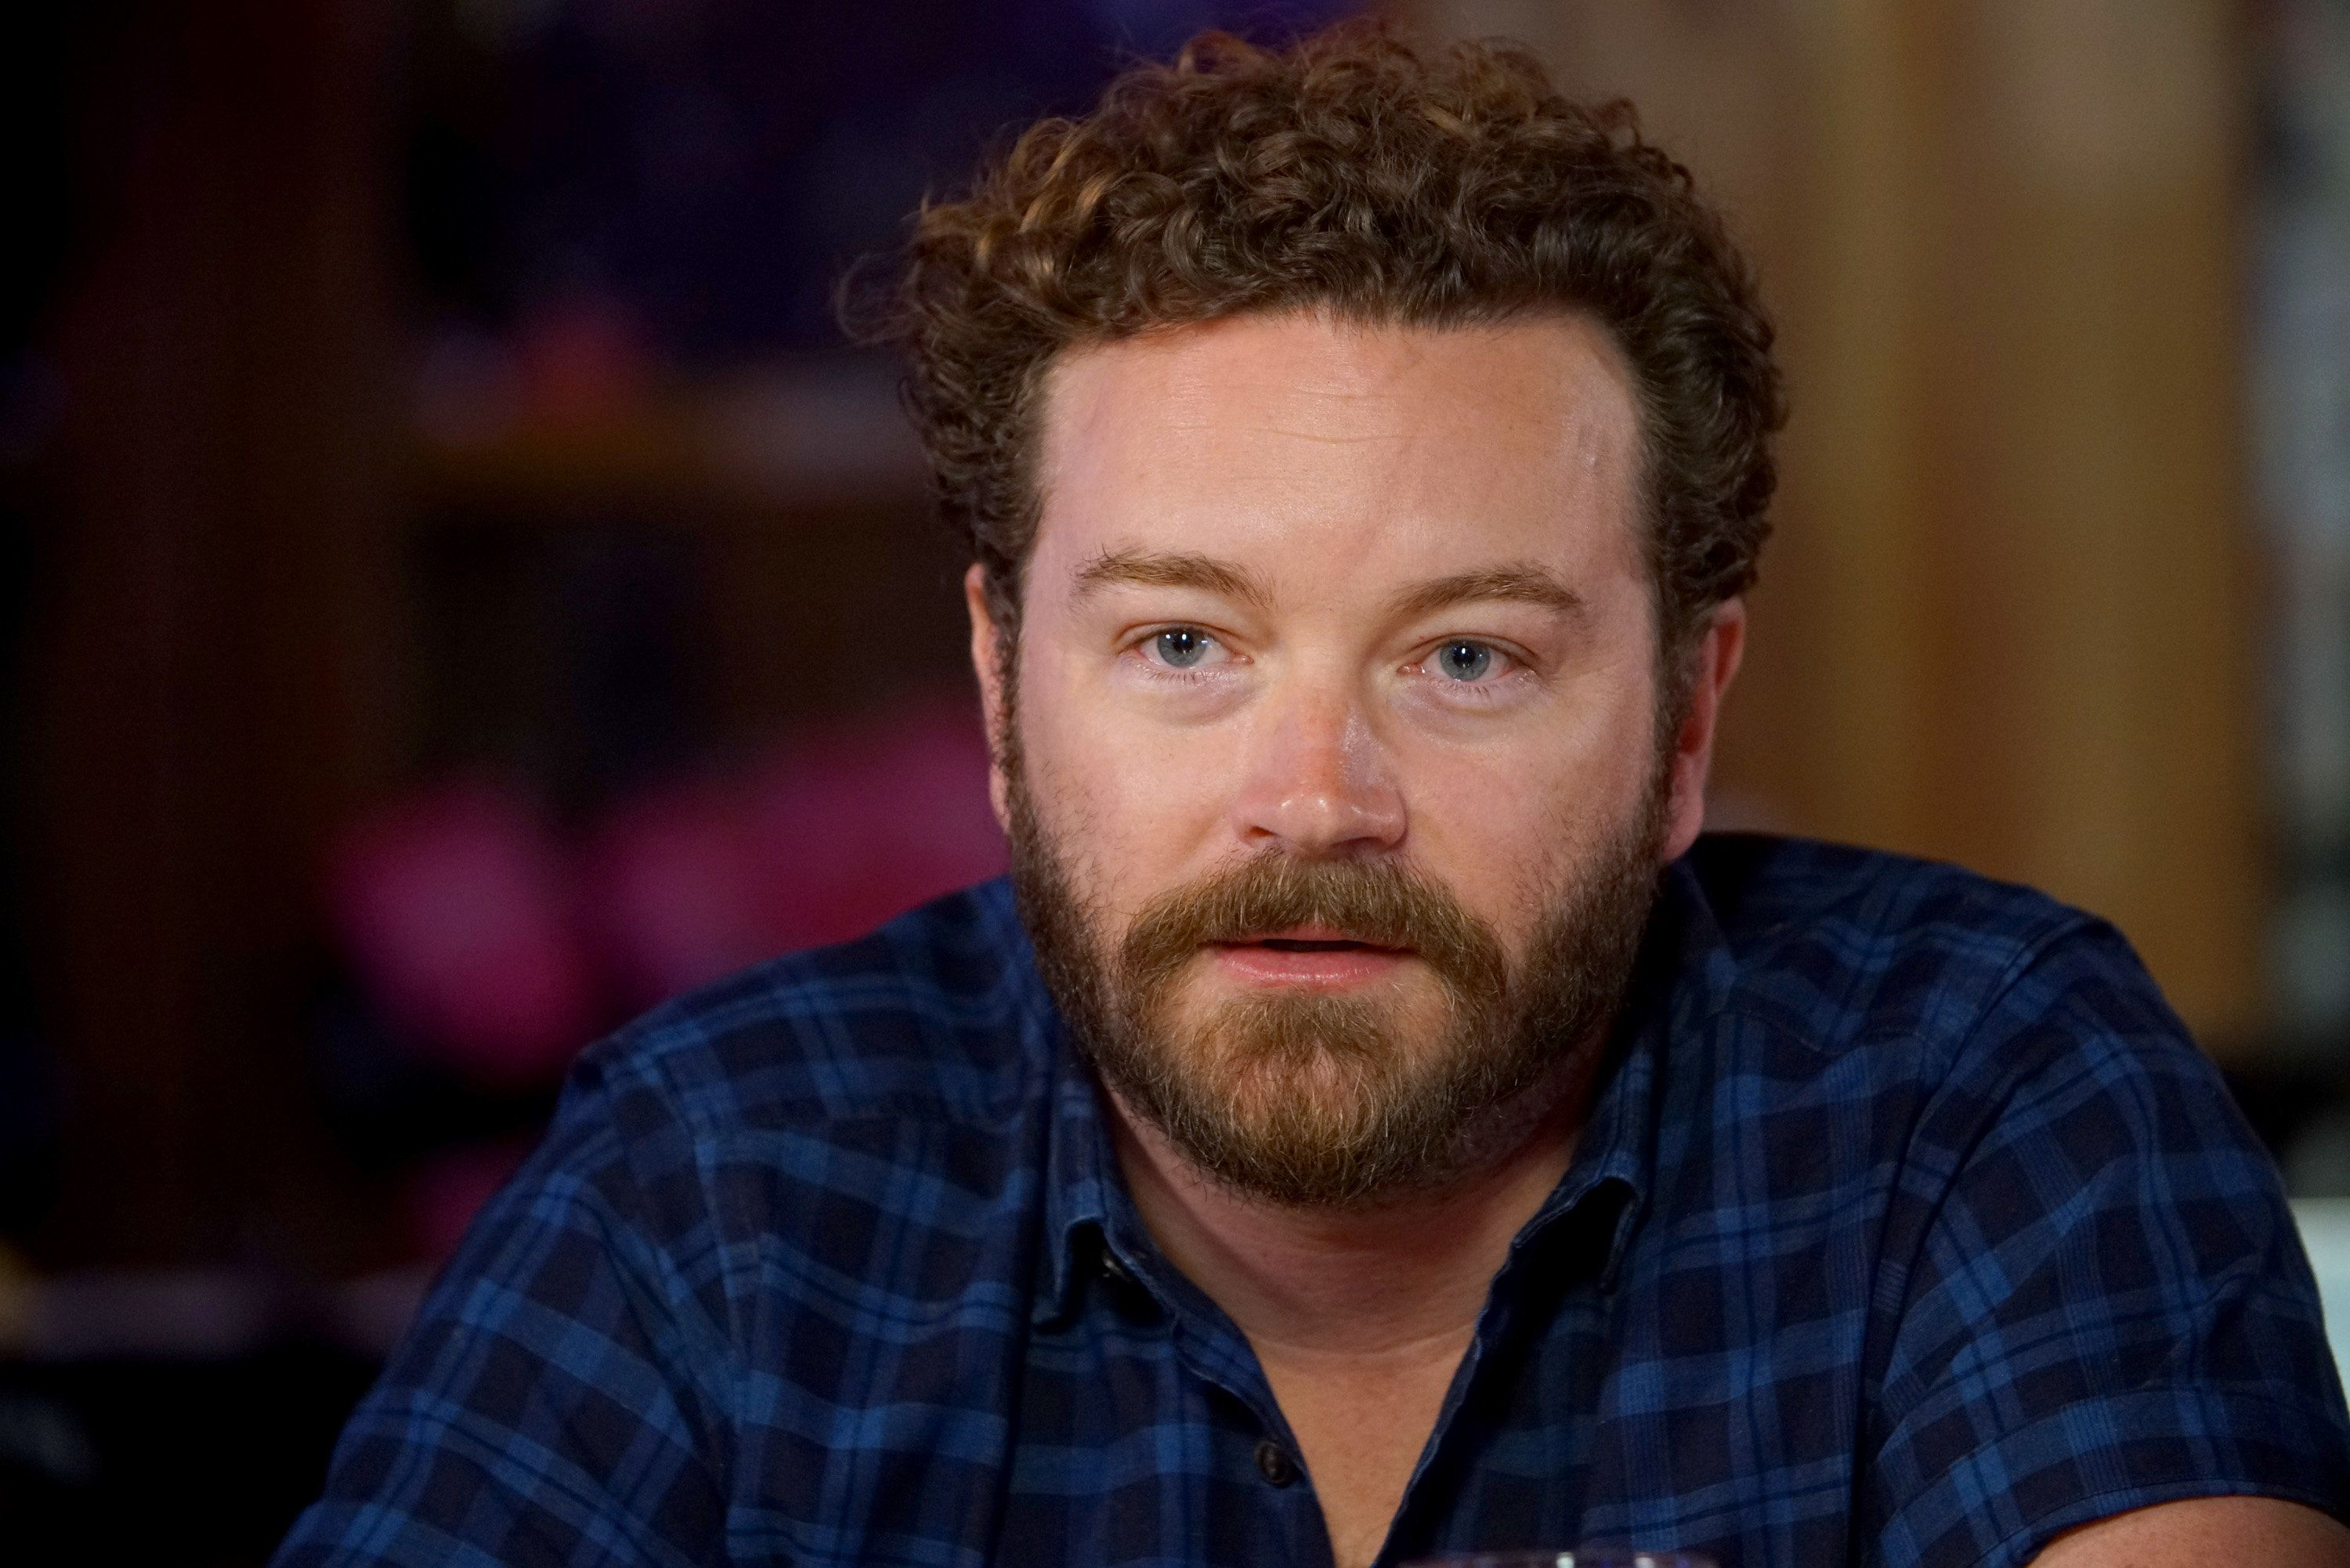 A top Hollywood talent agency has cut ties with actor Danny Masterson.